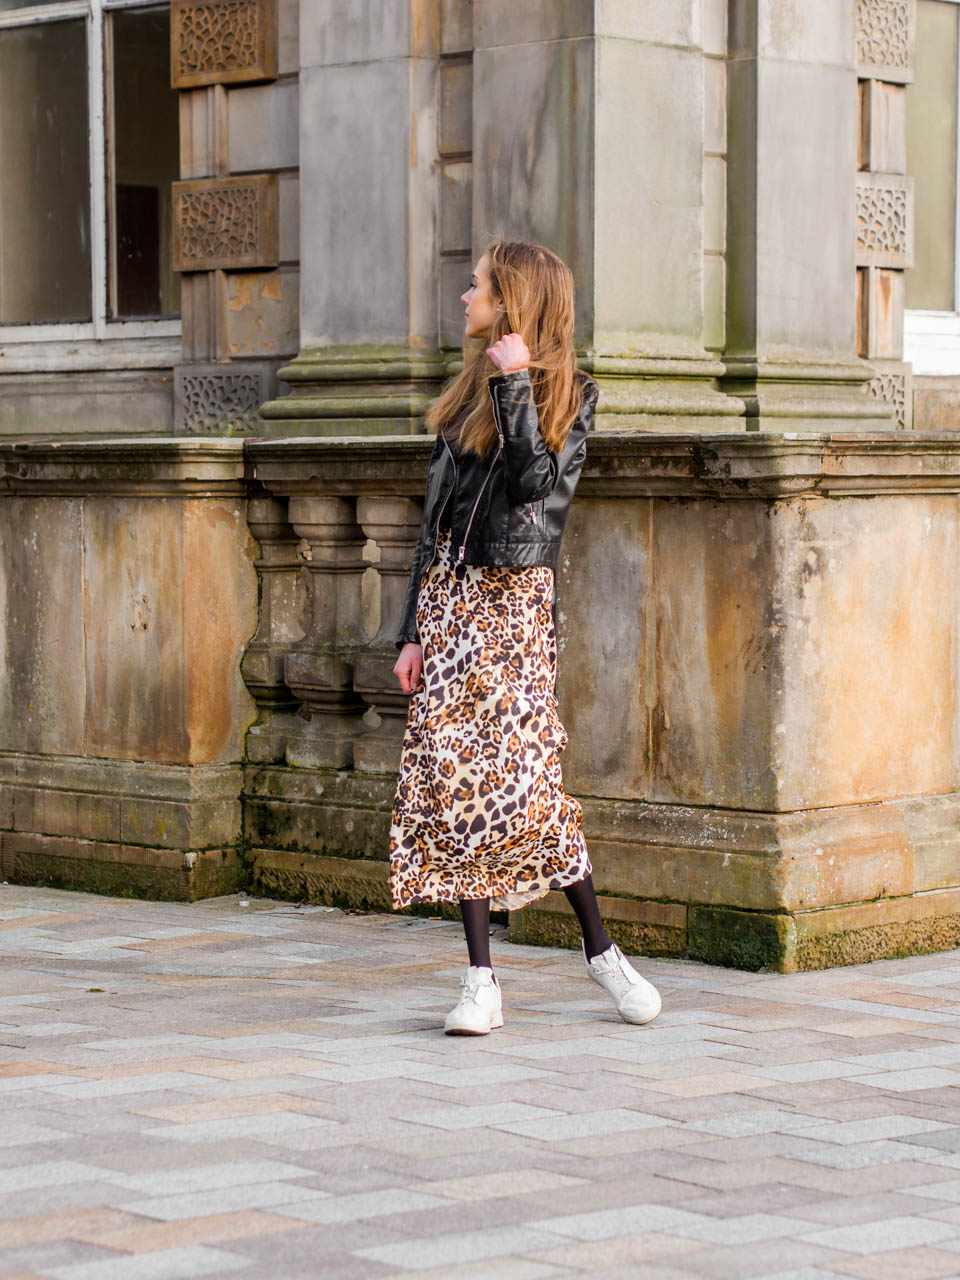 How to wear leopard print skirt autumn 2019 - Syysmuoti 2019, leopardihame